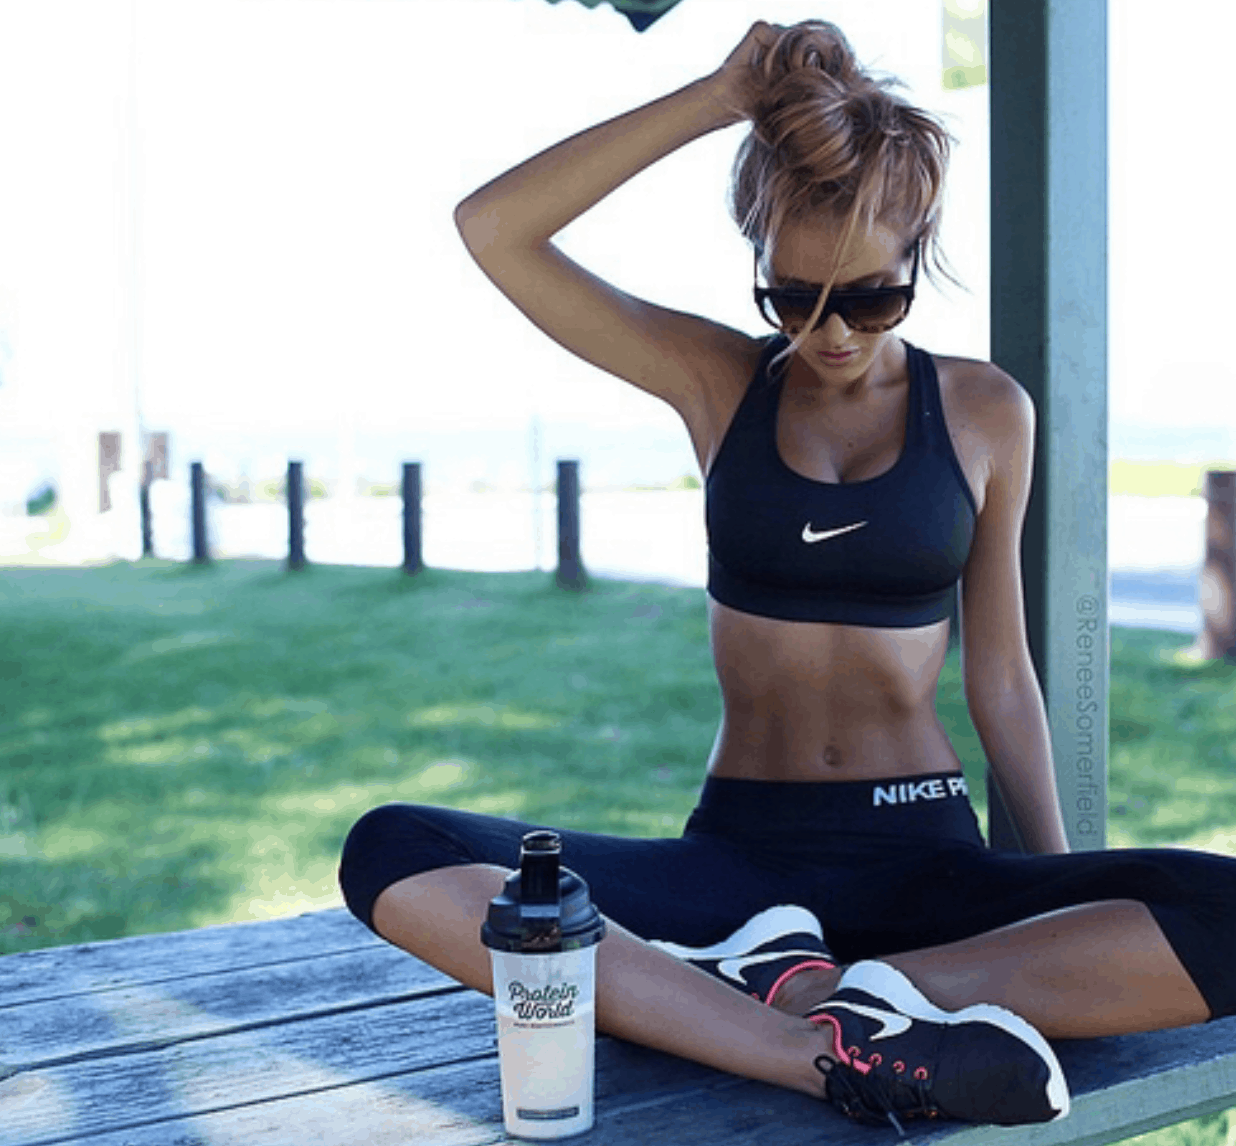 Do you like getting a work out, but hate going to the gym? Check out this article for great ways to work out without having a gym membership.